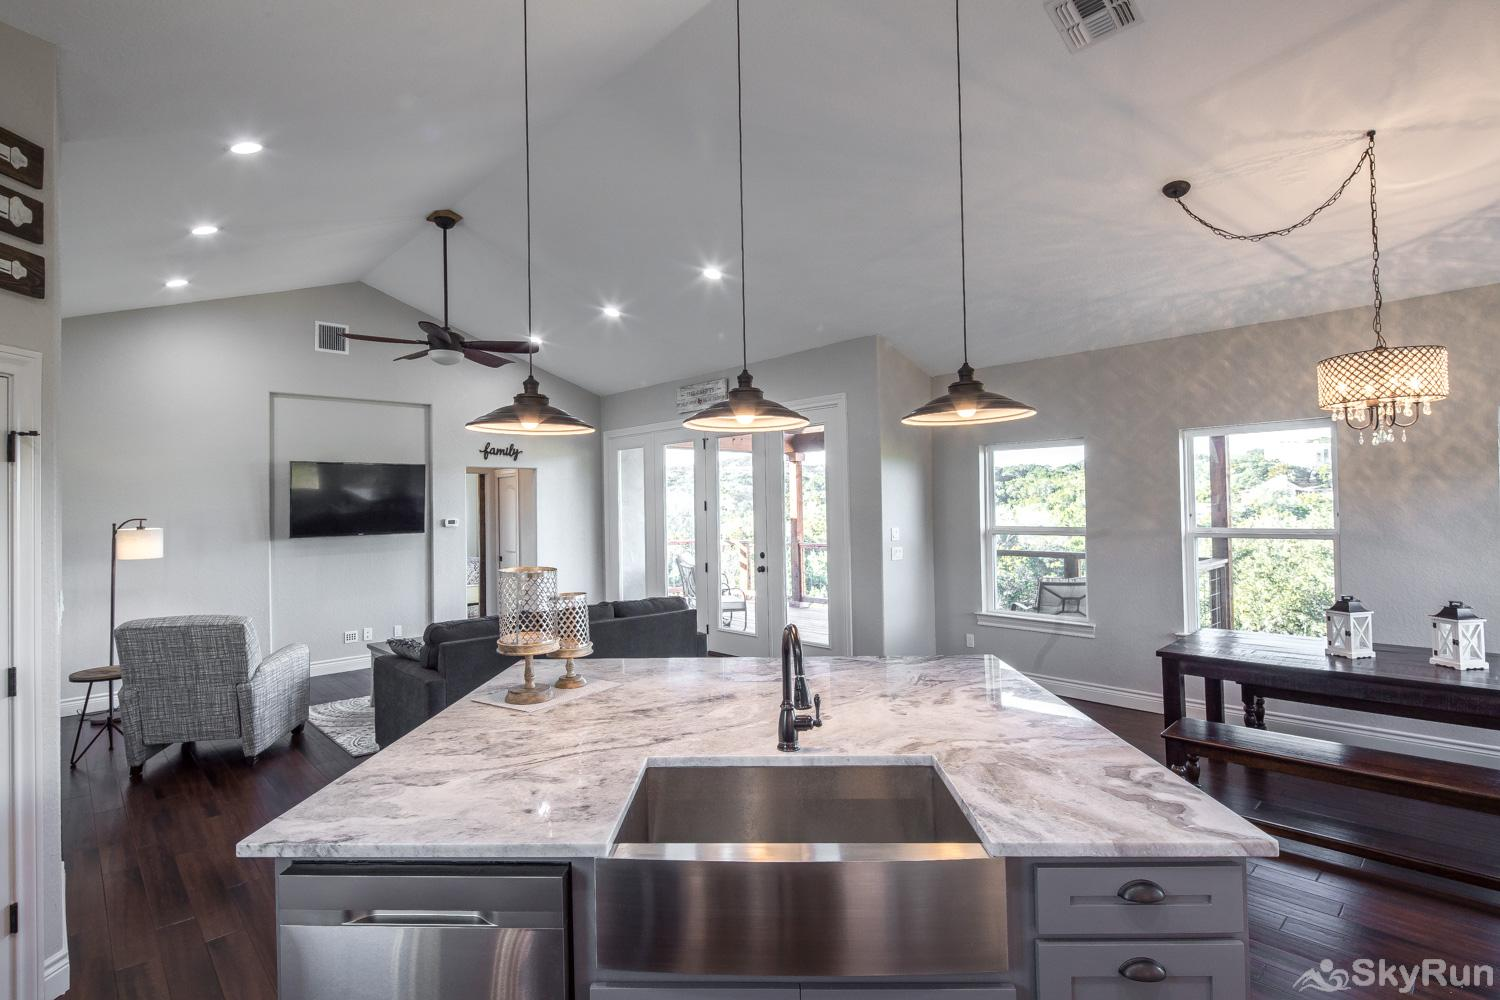 LAKESIDE LEDGE Huge Kitchen Island Overlooking Family Room